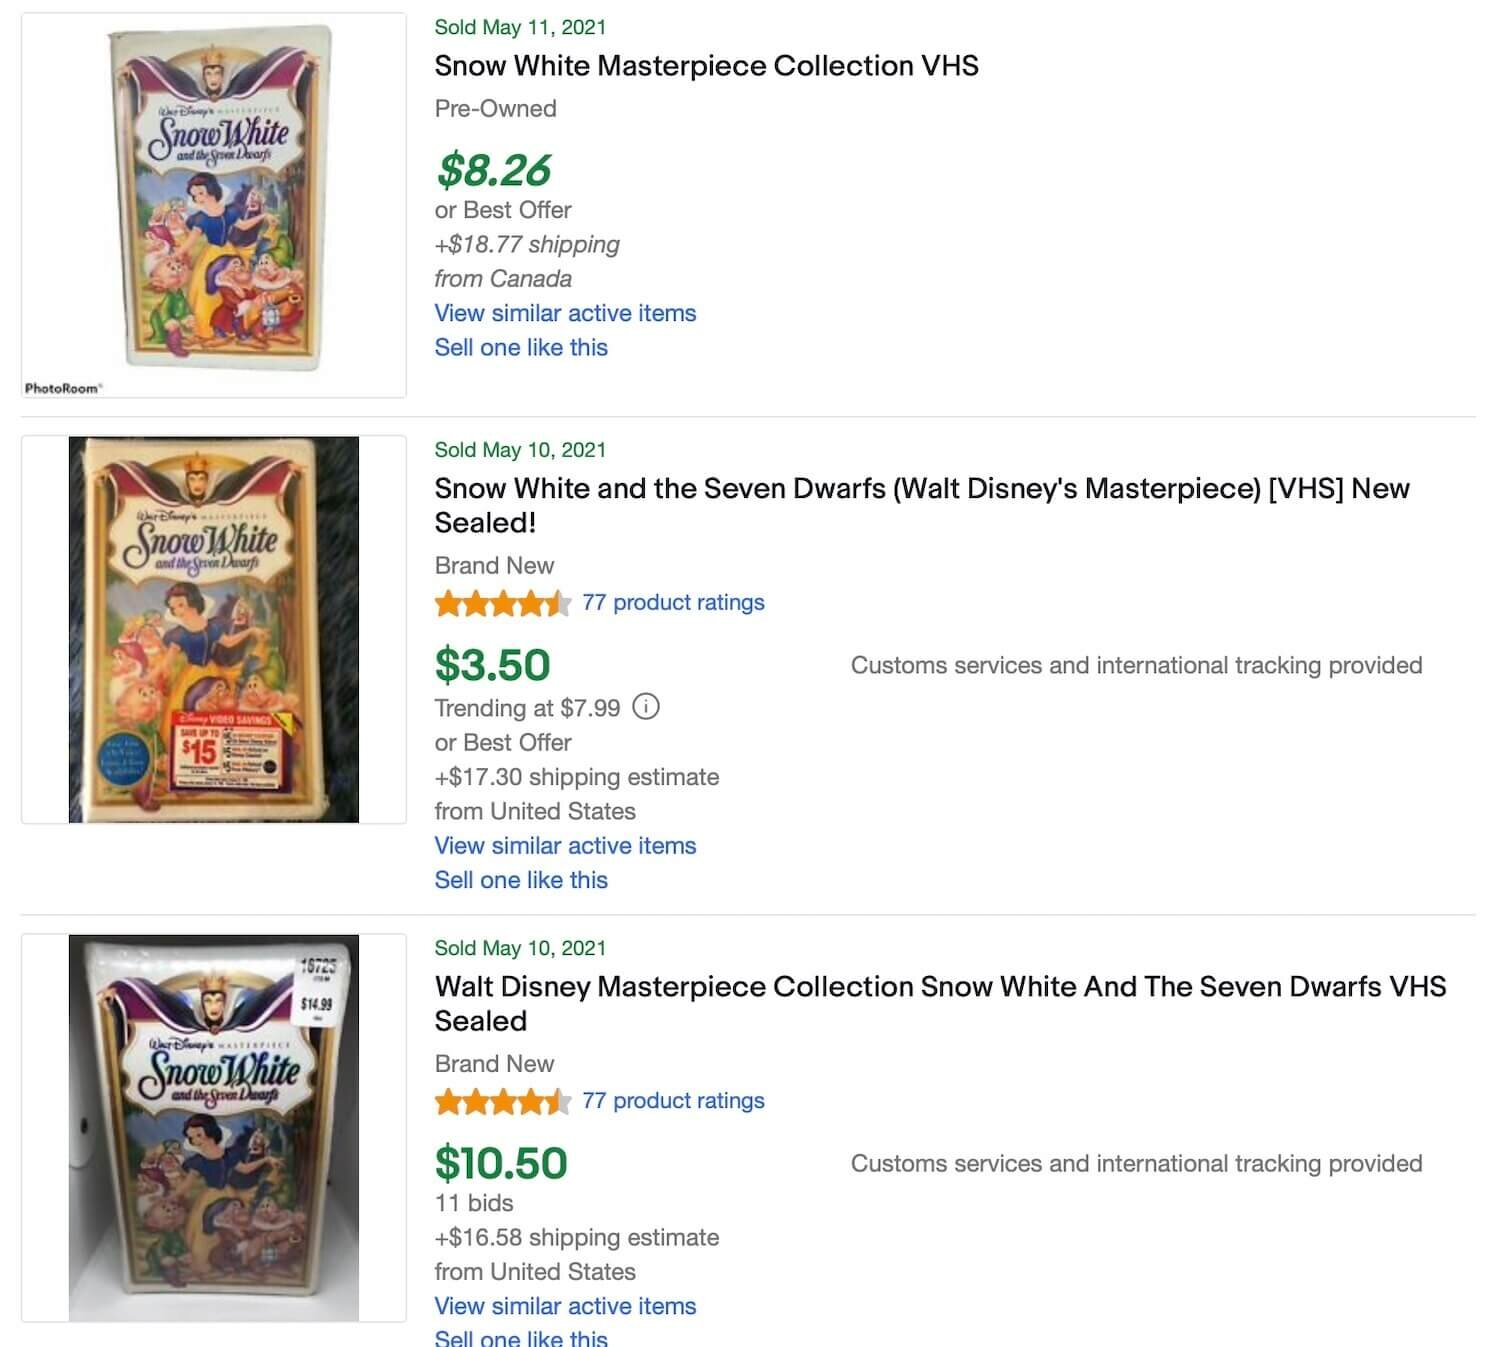 ACtual Sold Prices For The Masterpiece Snow White VHS